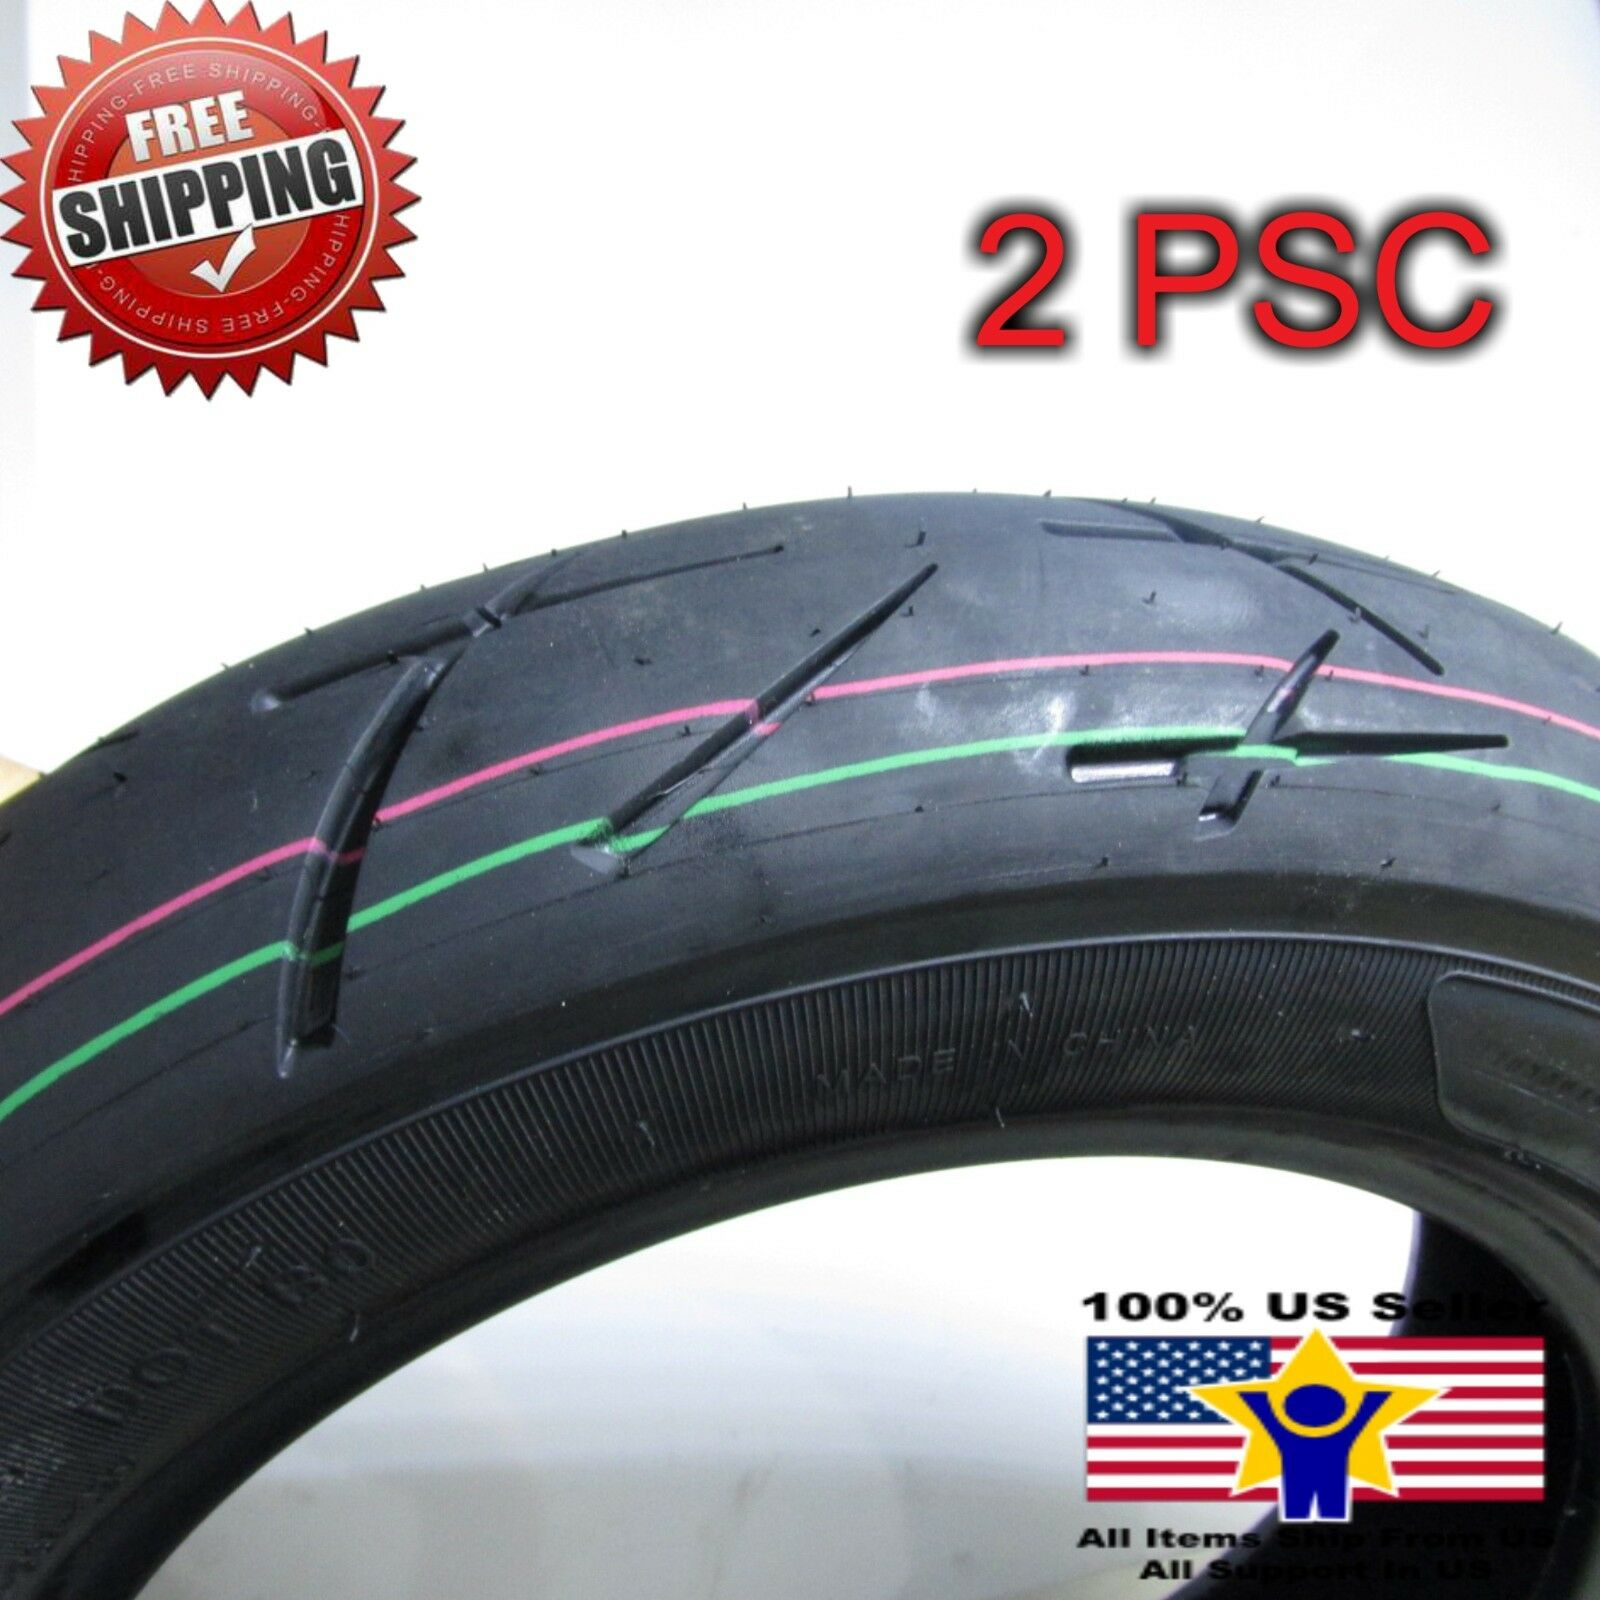 Scooter TaoTao ATM-50-A1 Tubeless Tires 3 00-10 for 50cc